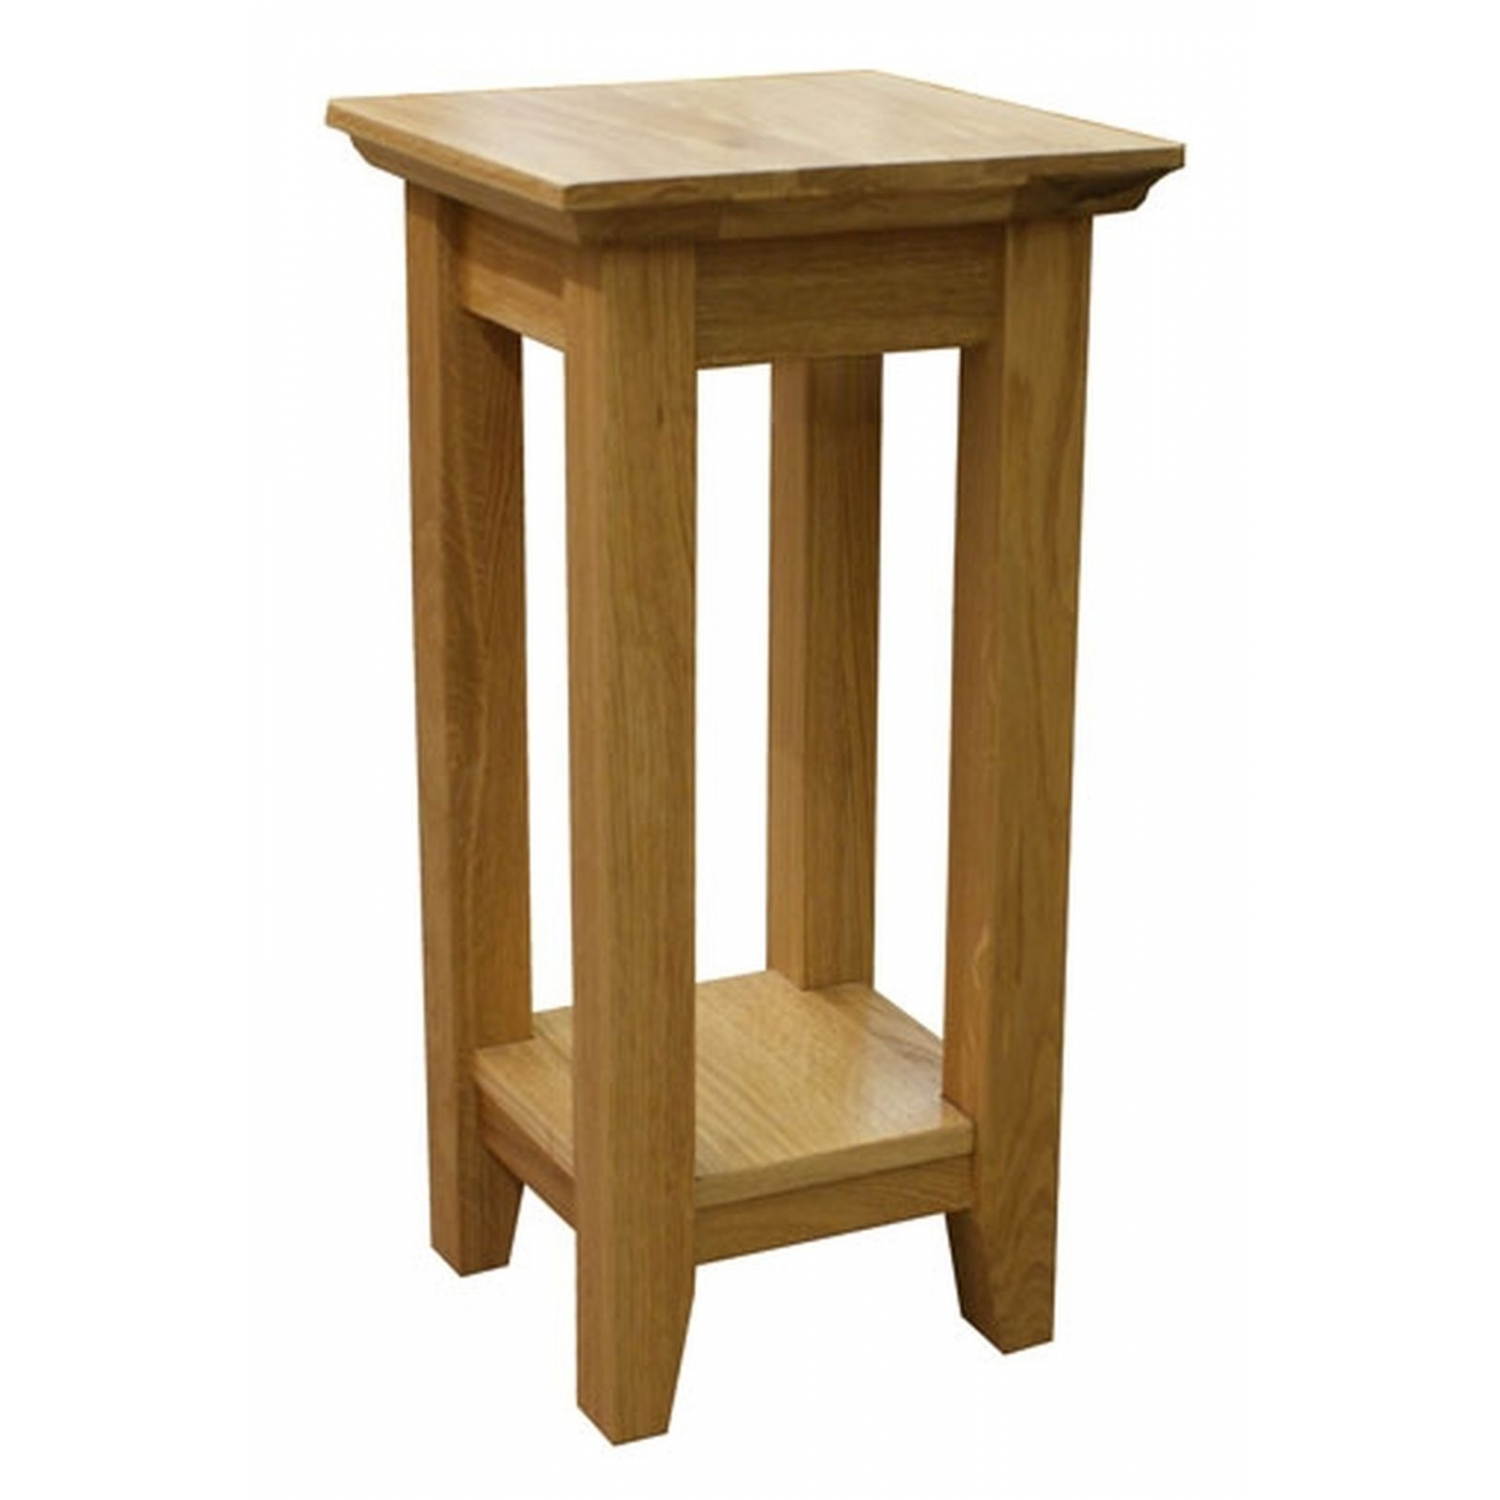 Belfry Solid Oak Furniture Tall Lamp Table Ebay